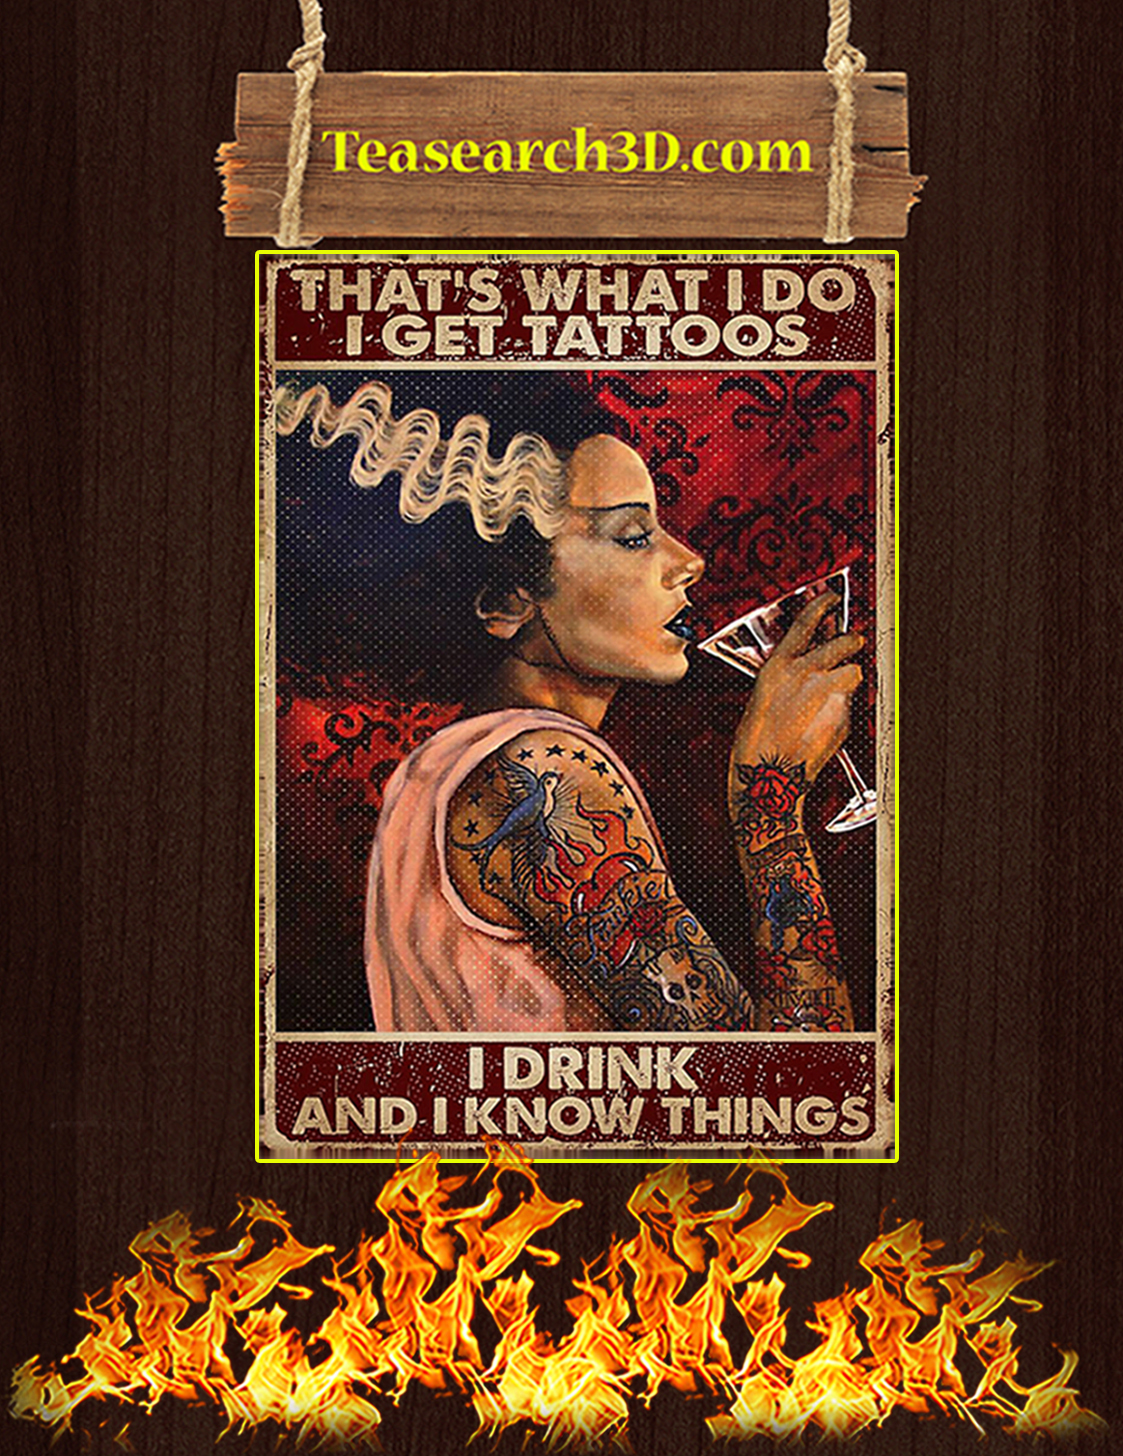 Tattoo woman that's what I do I get tattoos poster A3